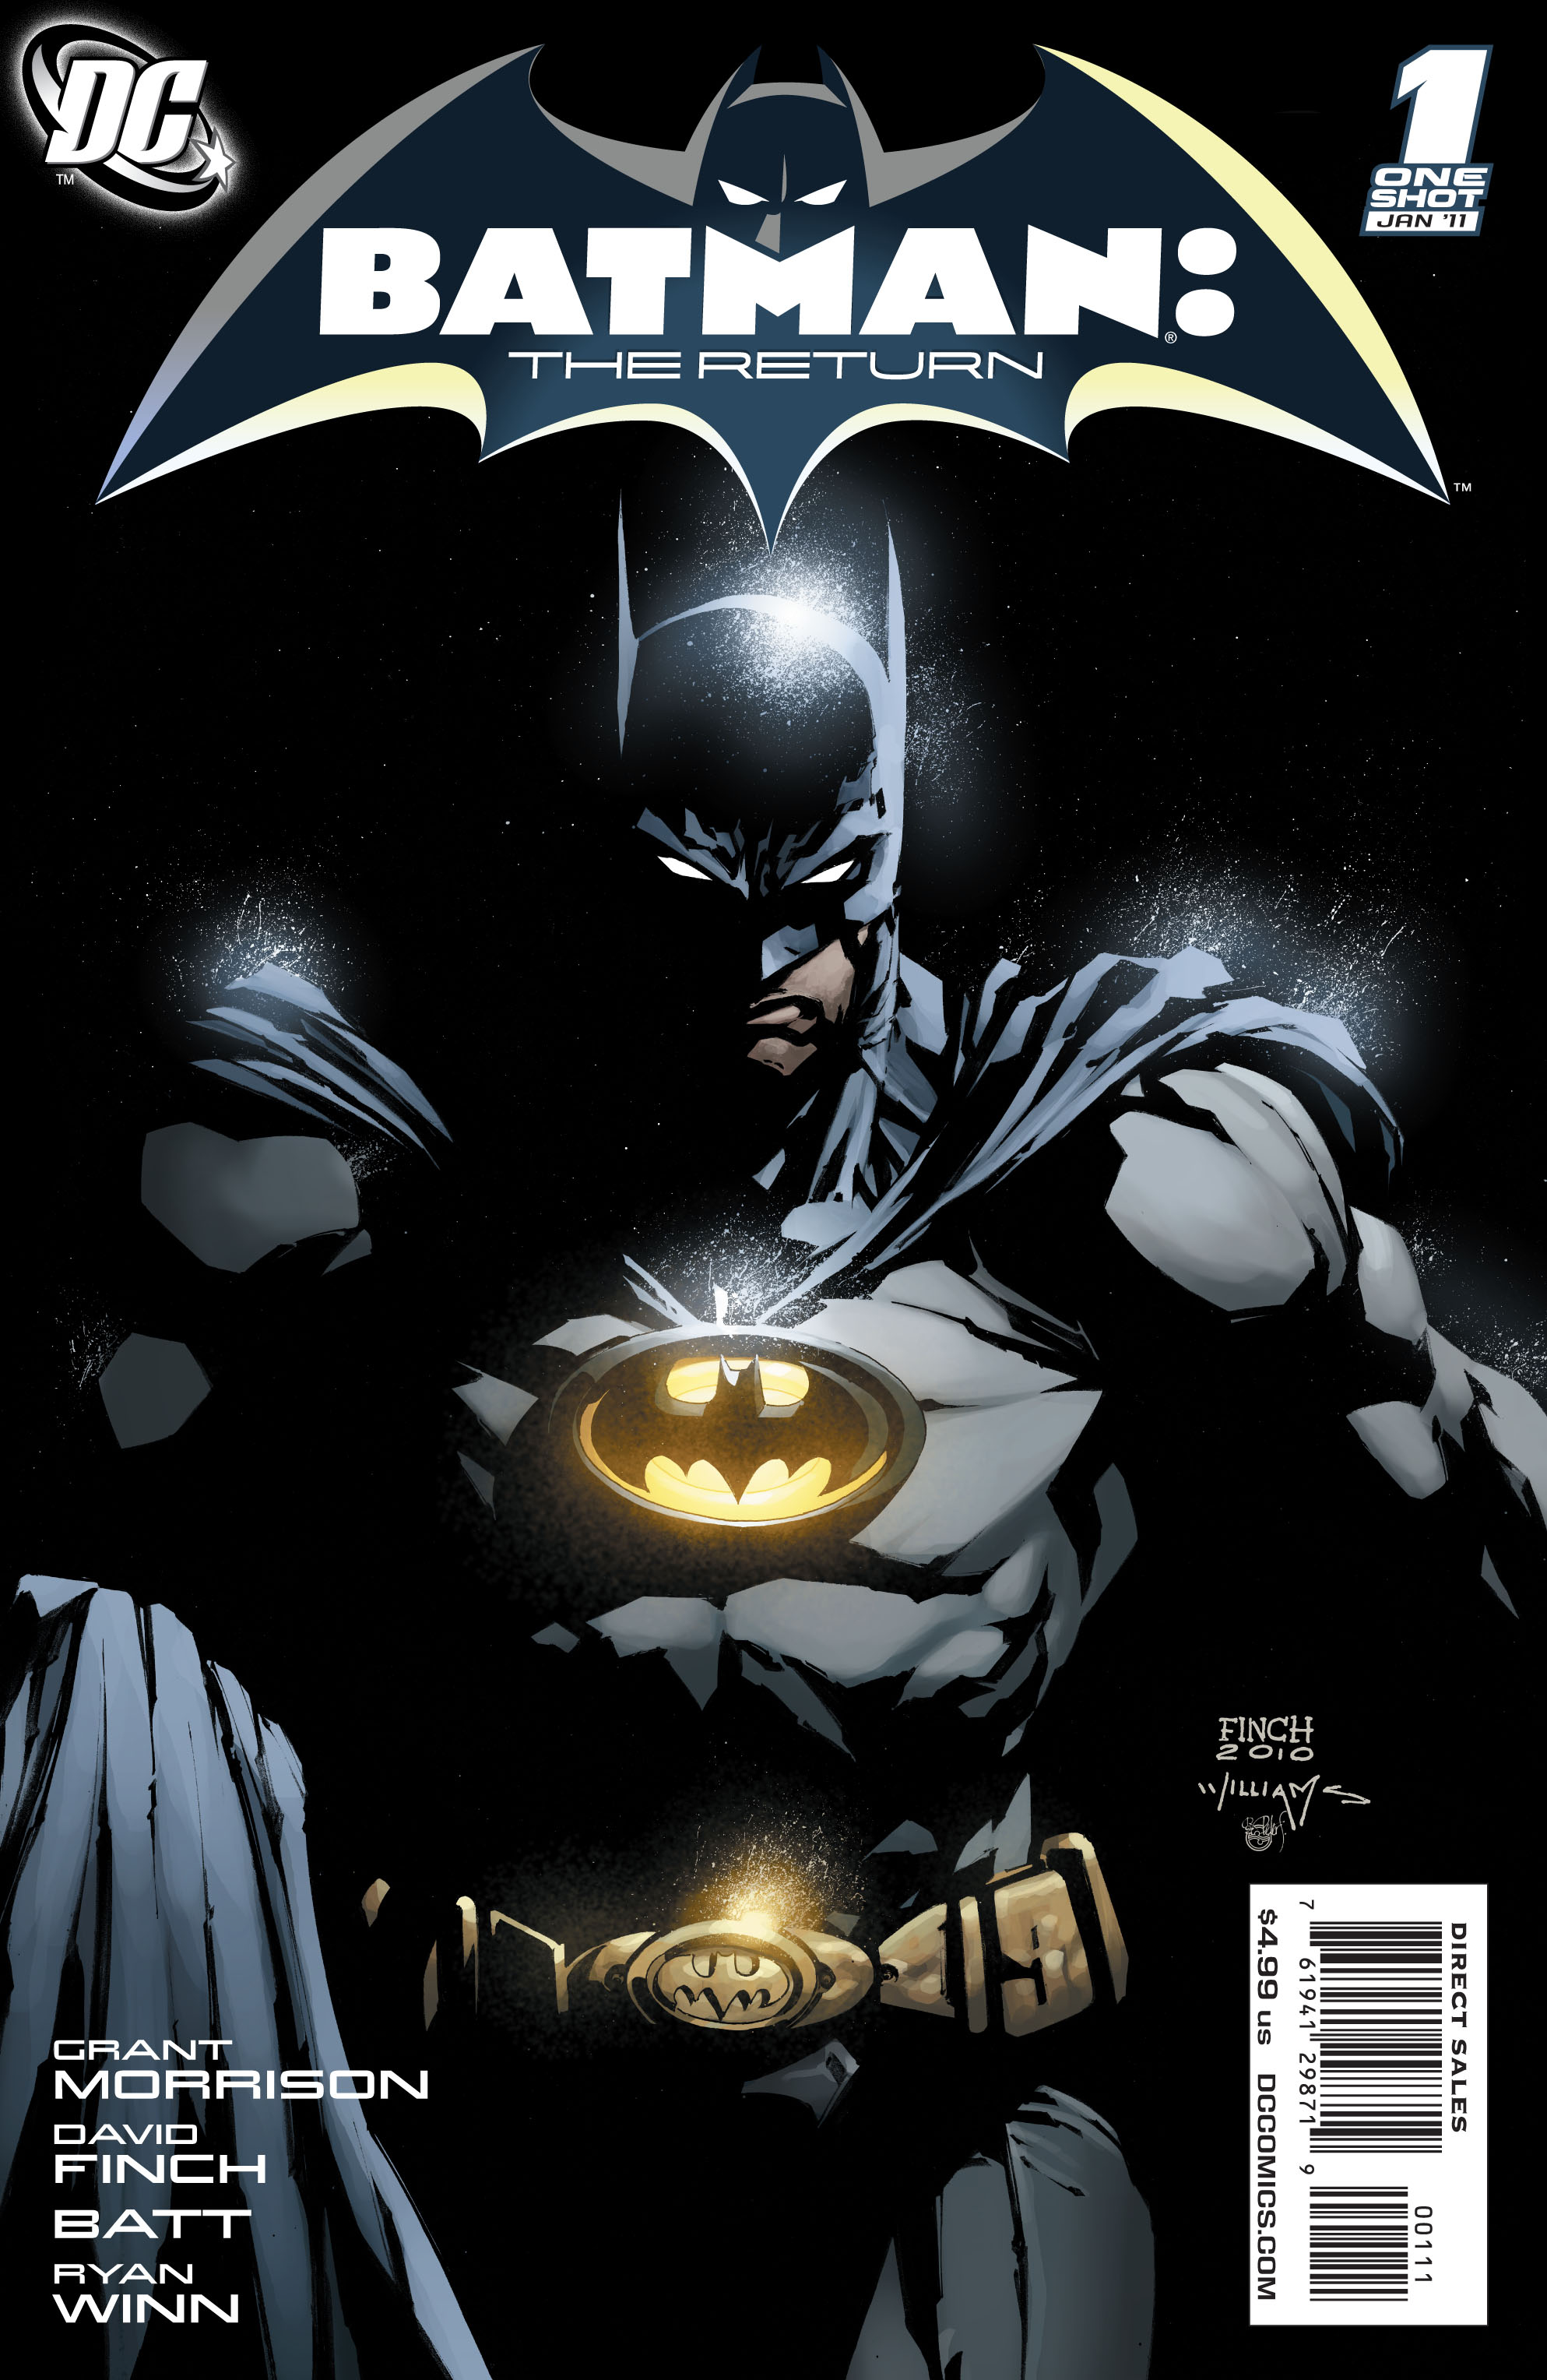 BATMAN THE RETURN #1